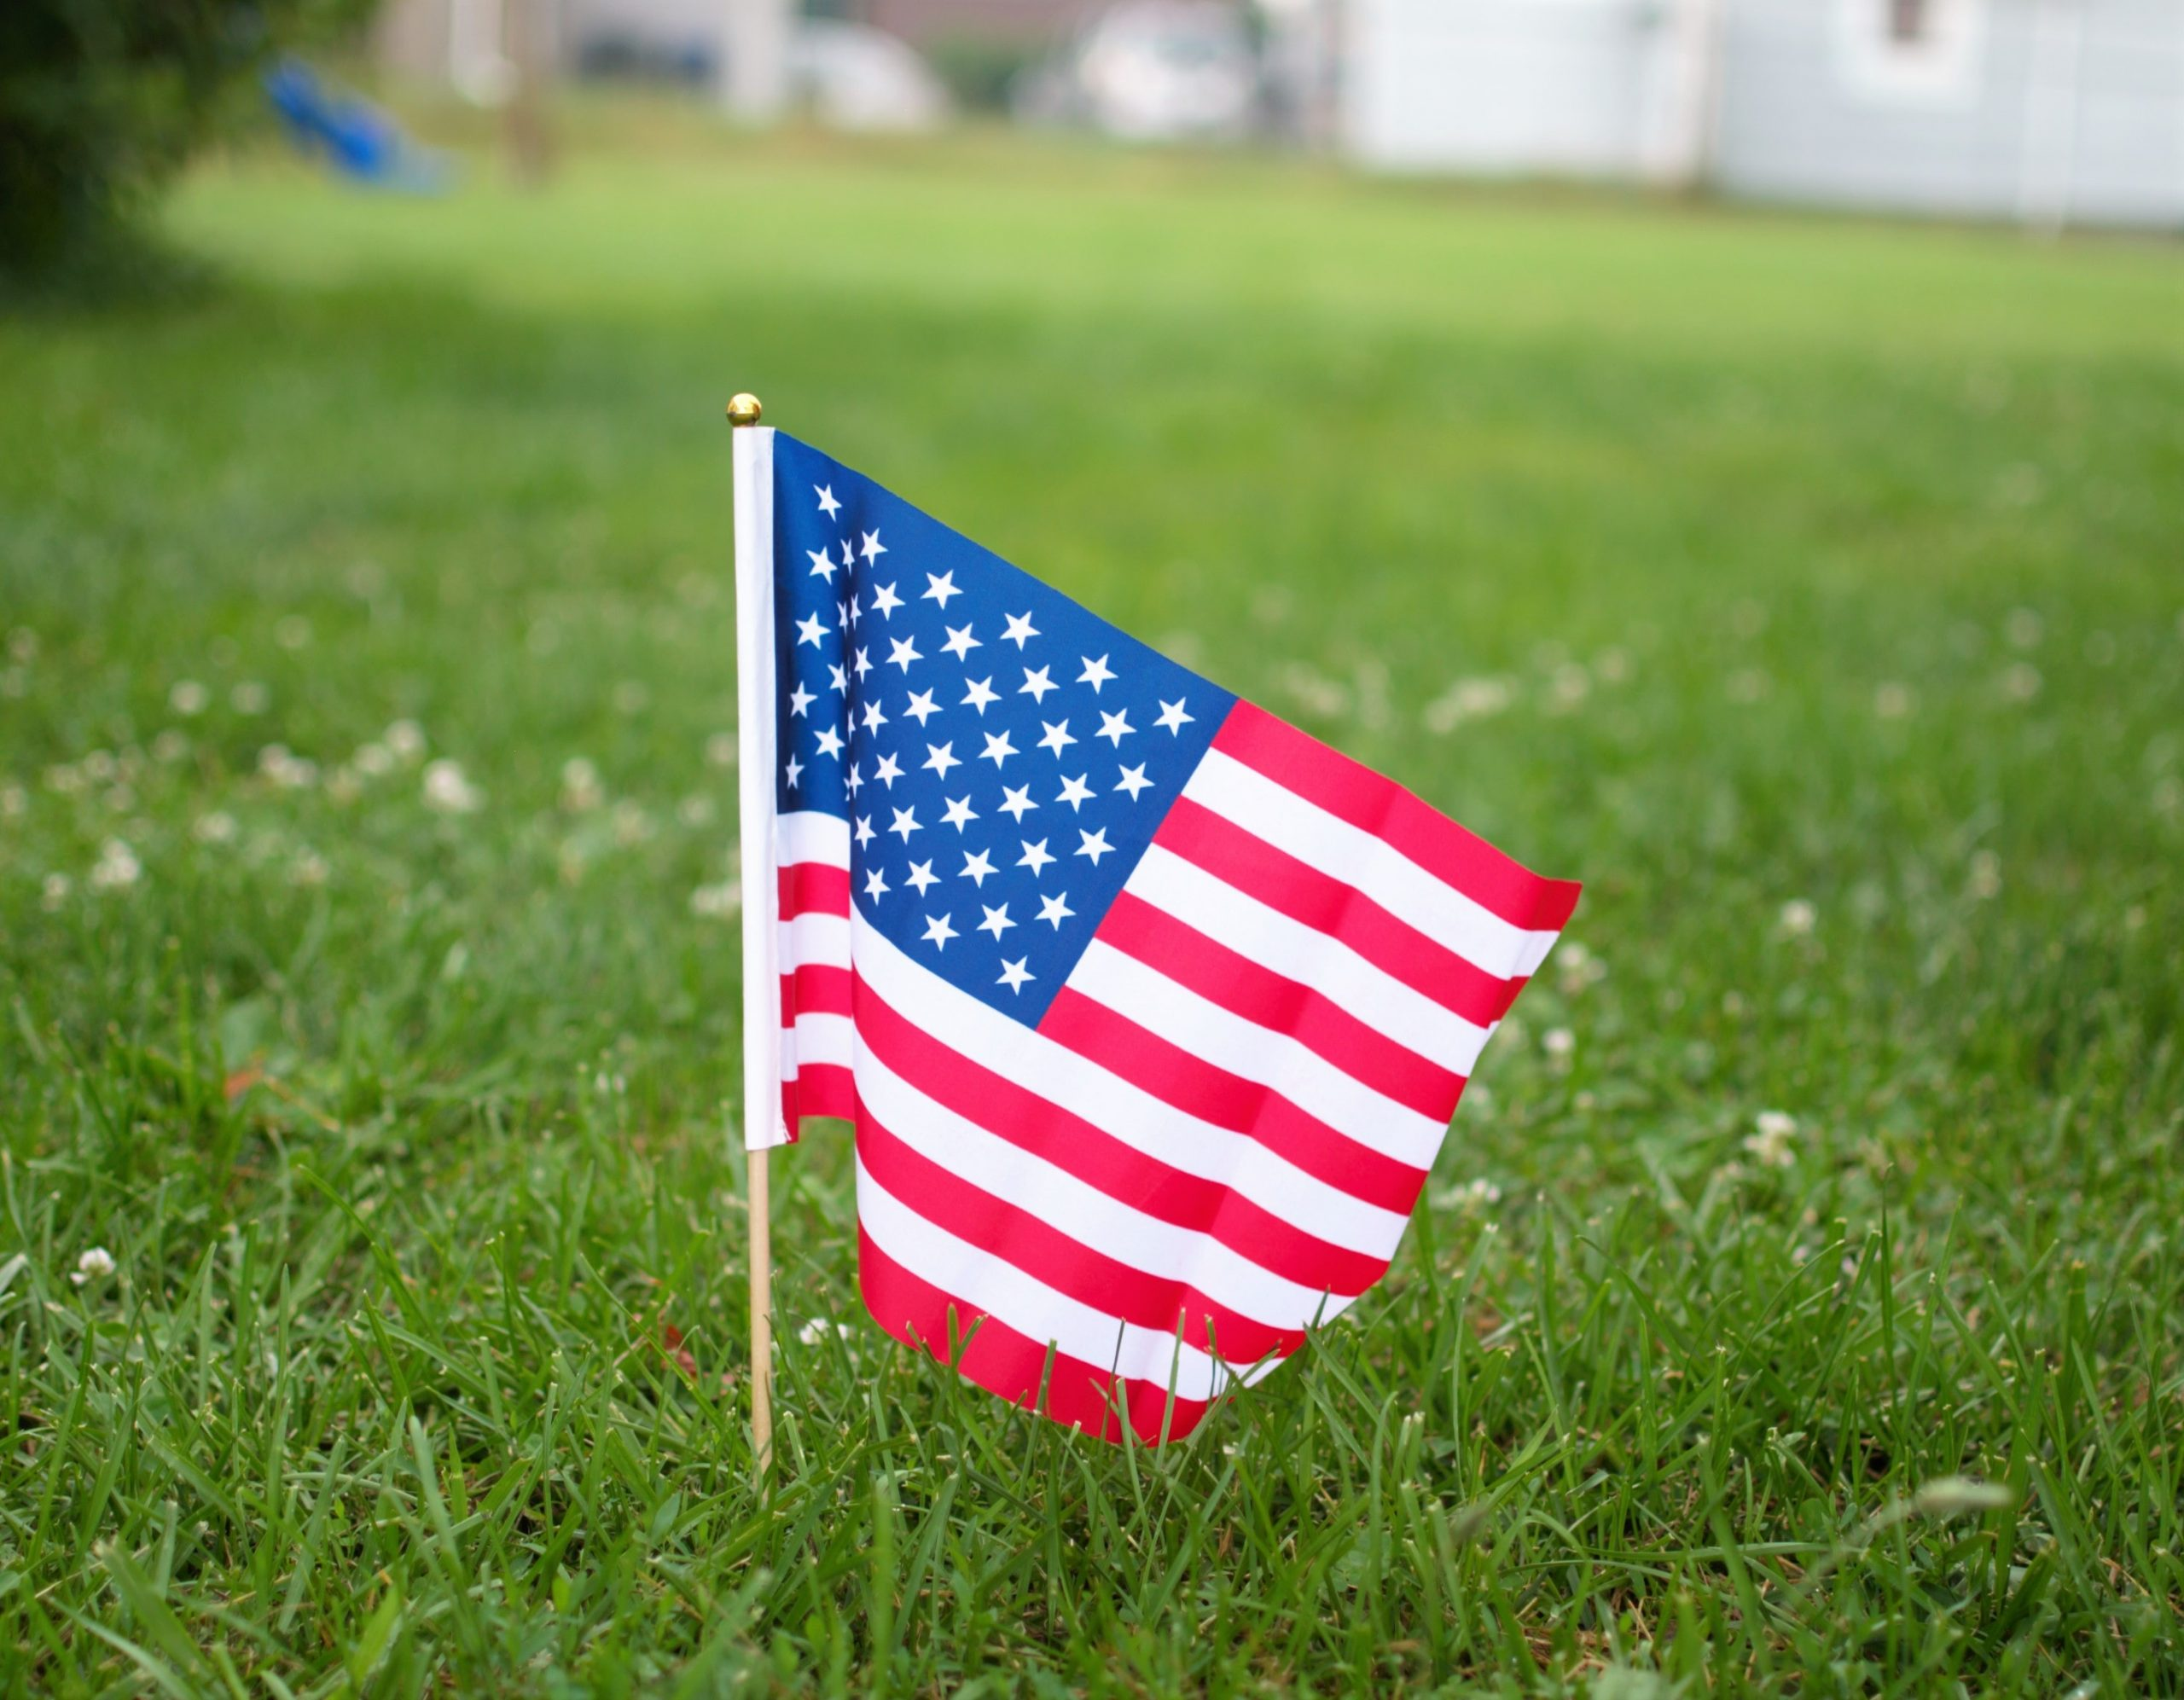 Fun 4th of July events in NYC